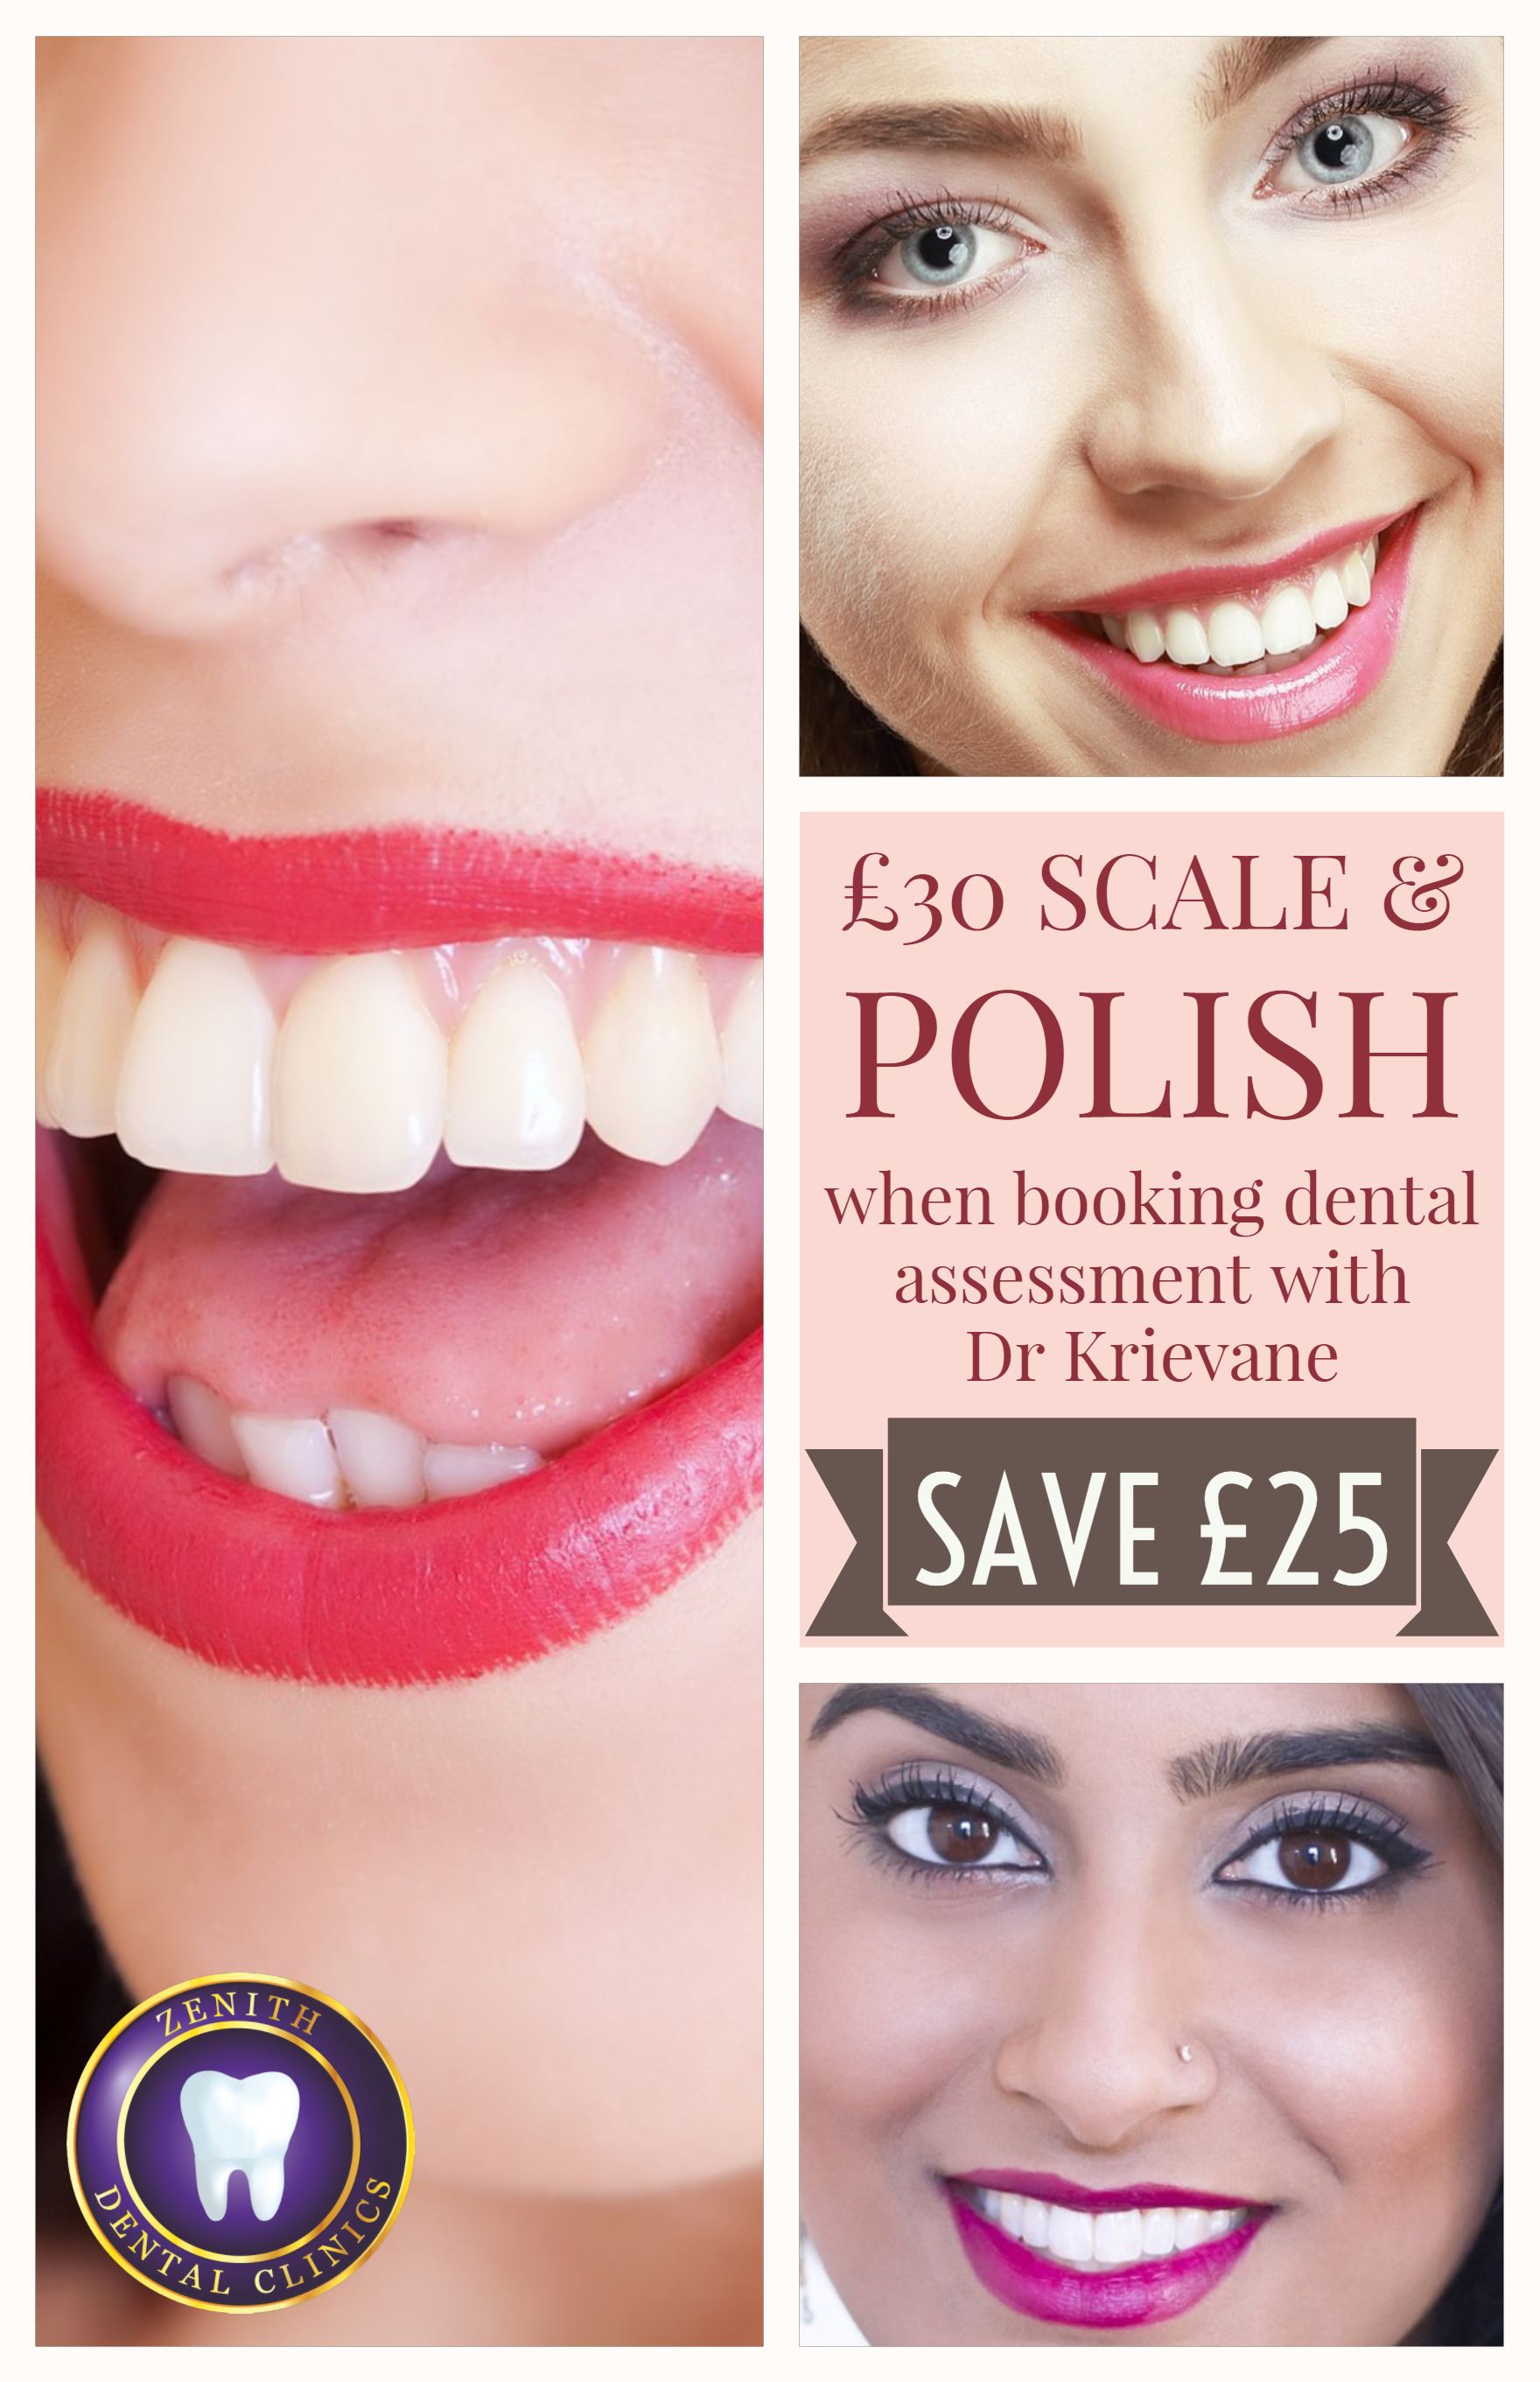 Dental Offer - Save £25